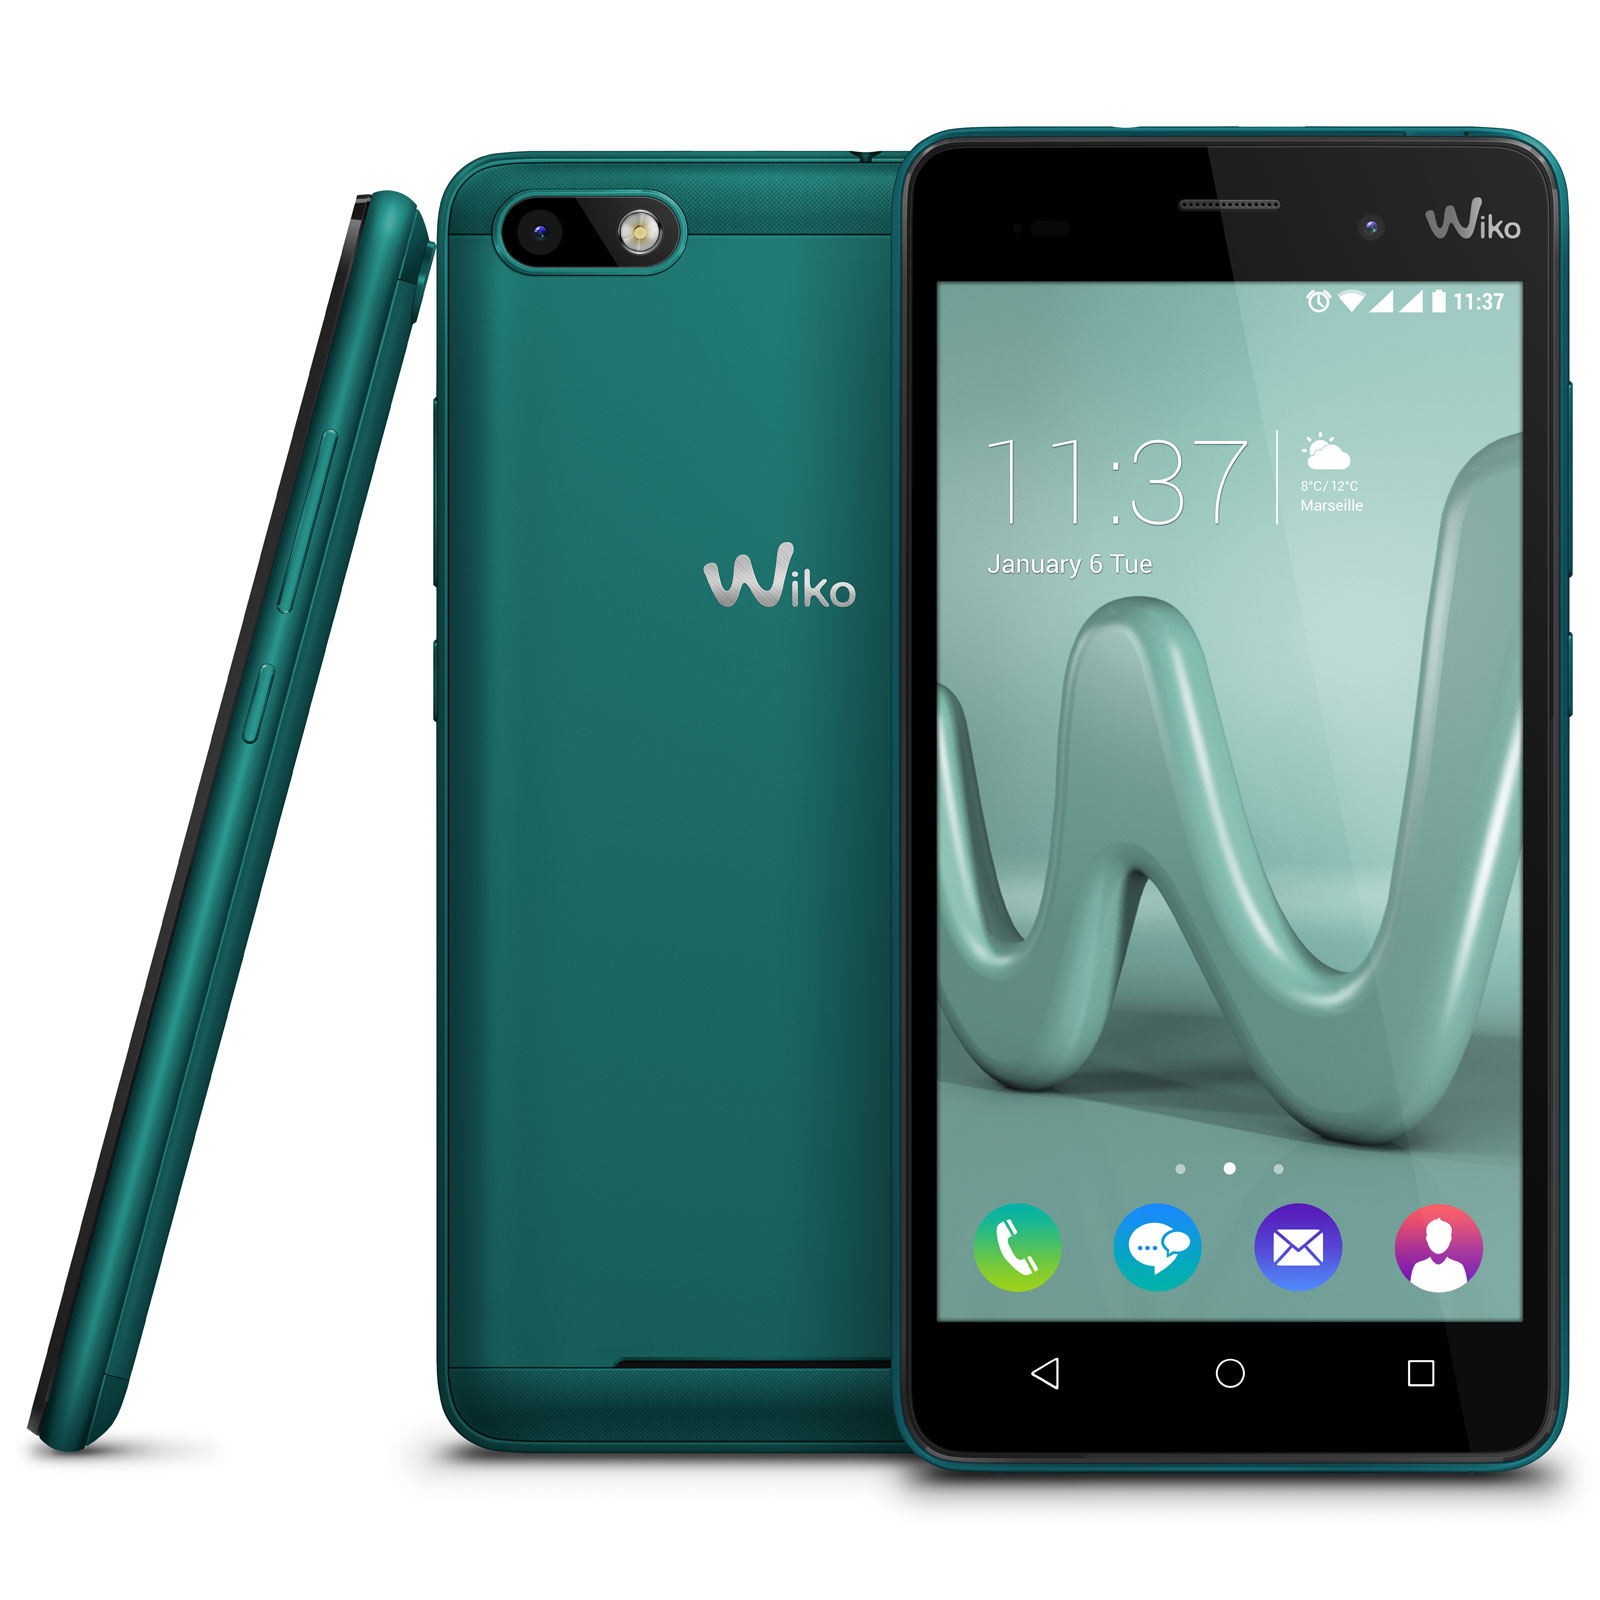 wiko lenny 3 bleen mobile smartphone wiko sur ldlc. Black Bedroom Furniture Sets. Home Design Ideas